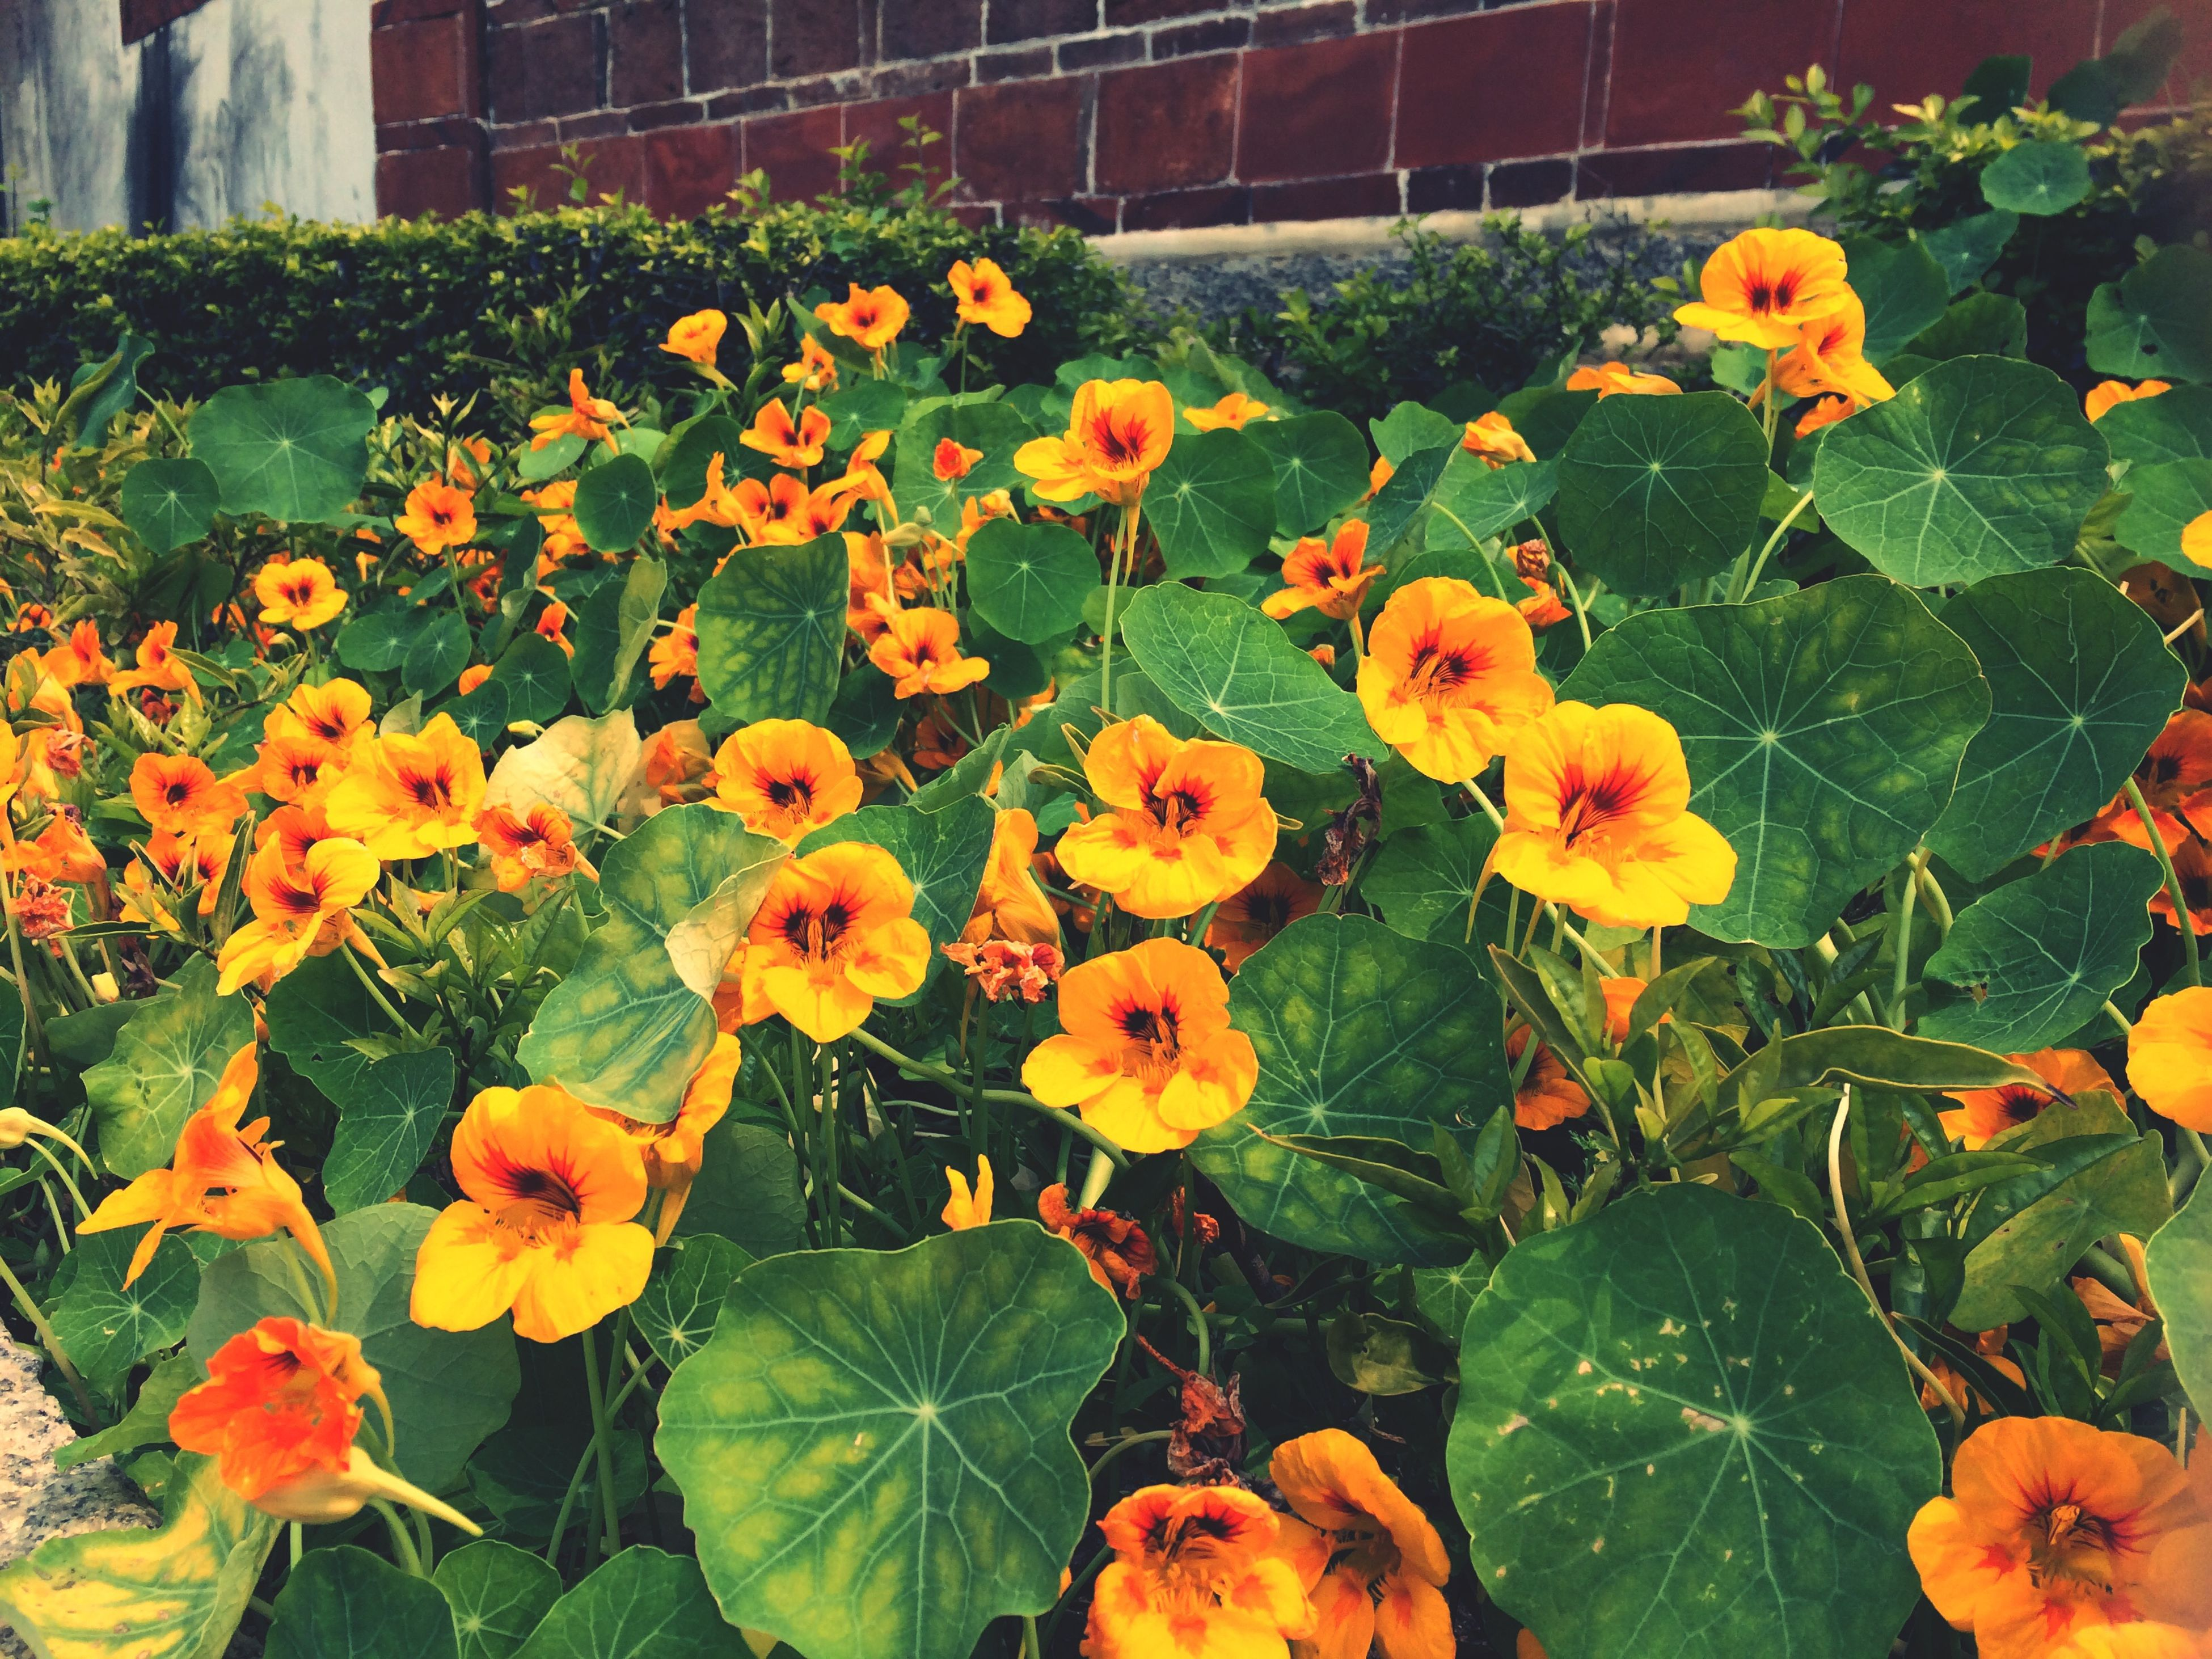 flower, freshness, fragility, petal, yellow, flower head, growth, beauty in nature, blooming, plant, nature, leaf, in bloom, high angle view, green color, orange color, blossom, day, outdoors, park - man made space